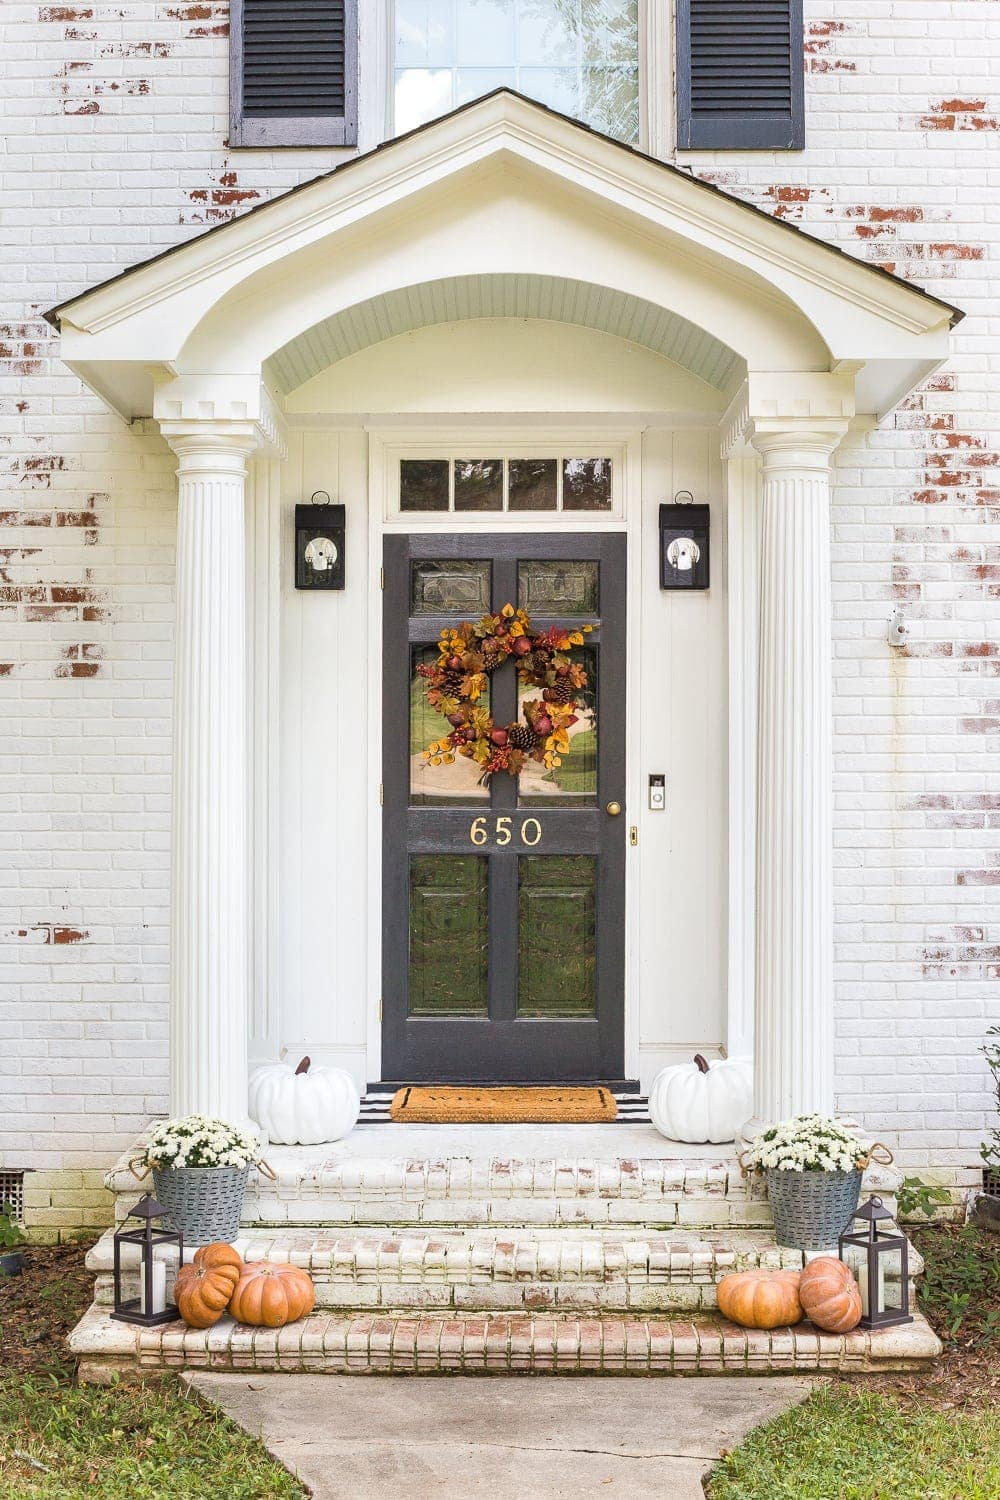 Roof Design Ideas: Fall Front Porch Stoop